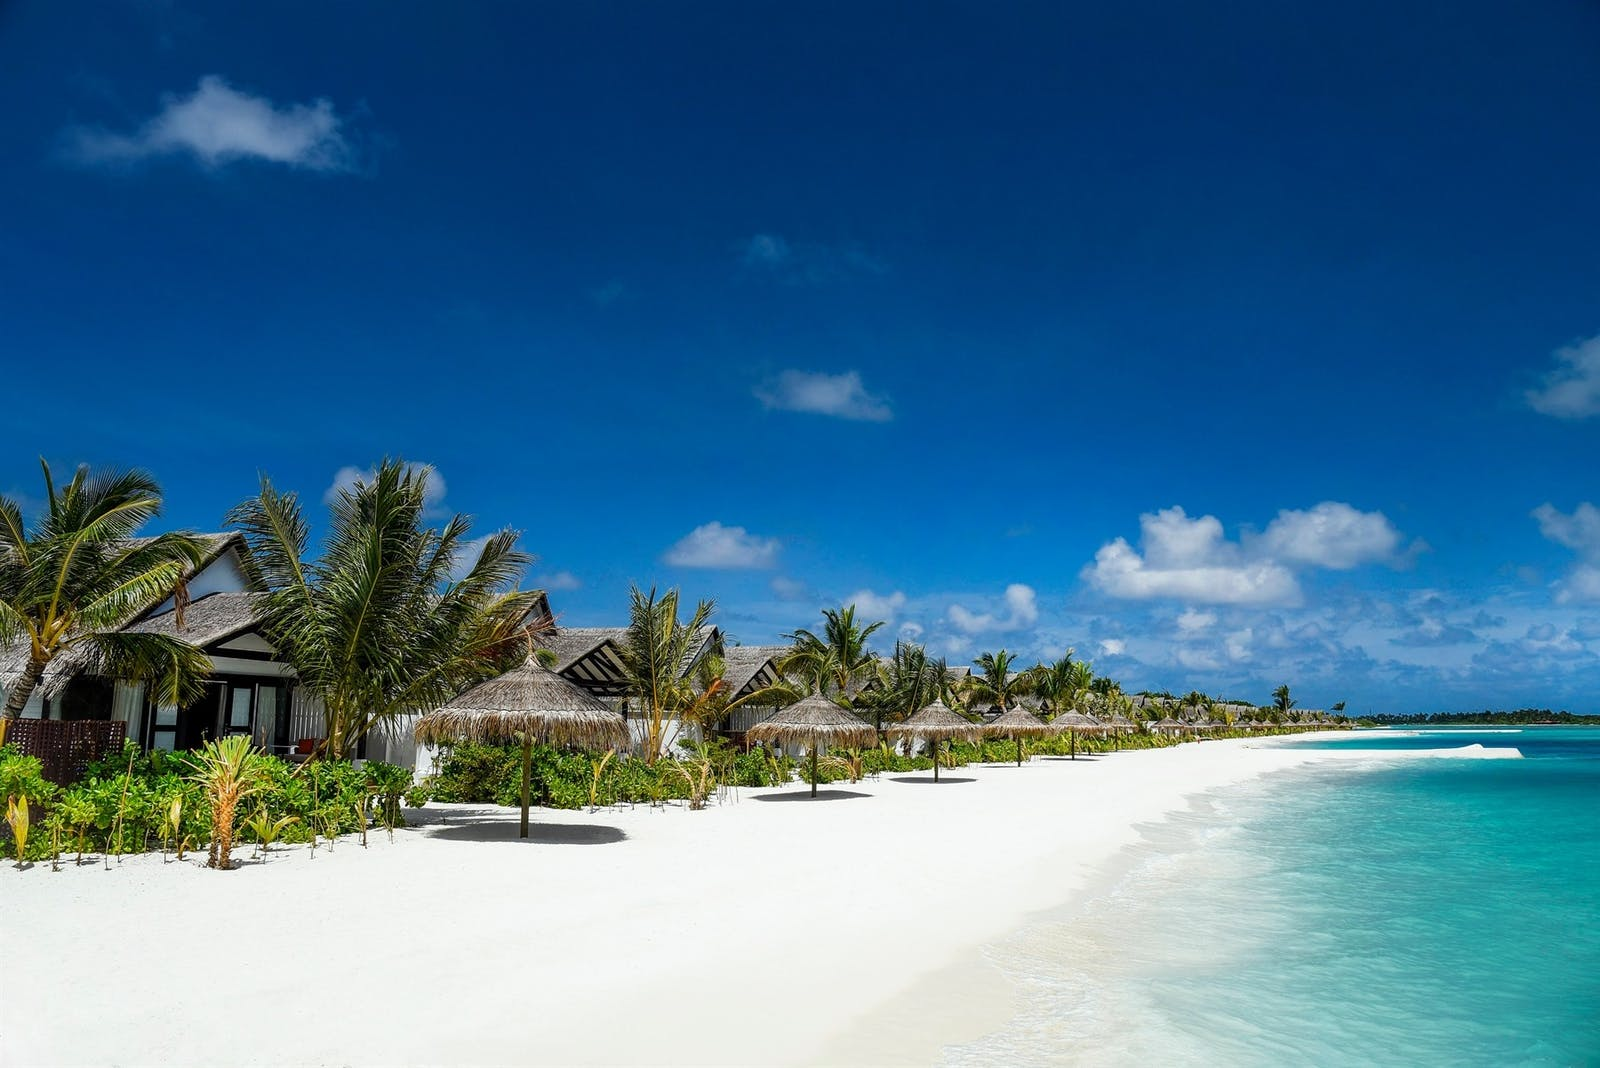 OZEN by Atmosphere at Maadhoo, Maldives, Indian Ocean